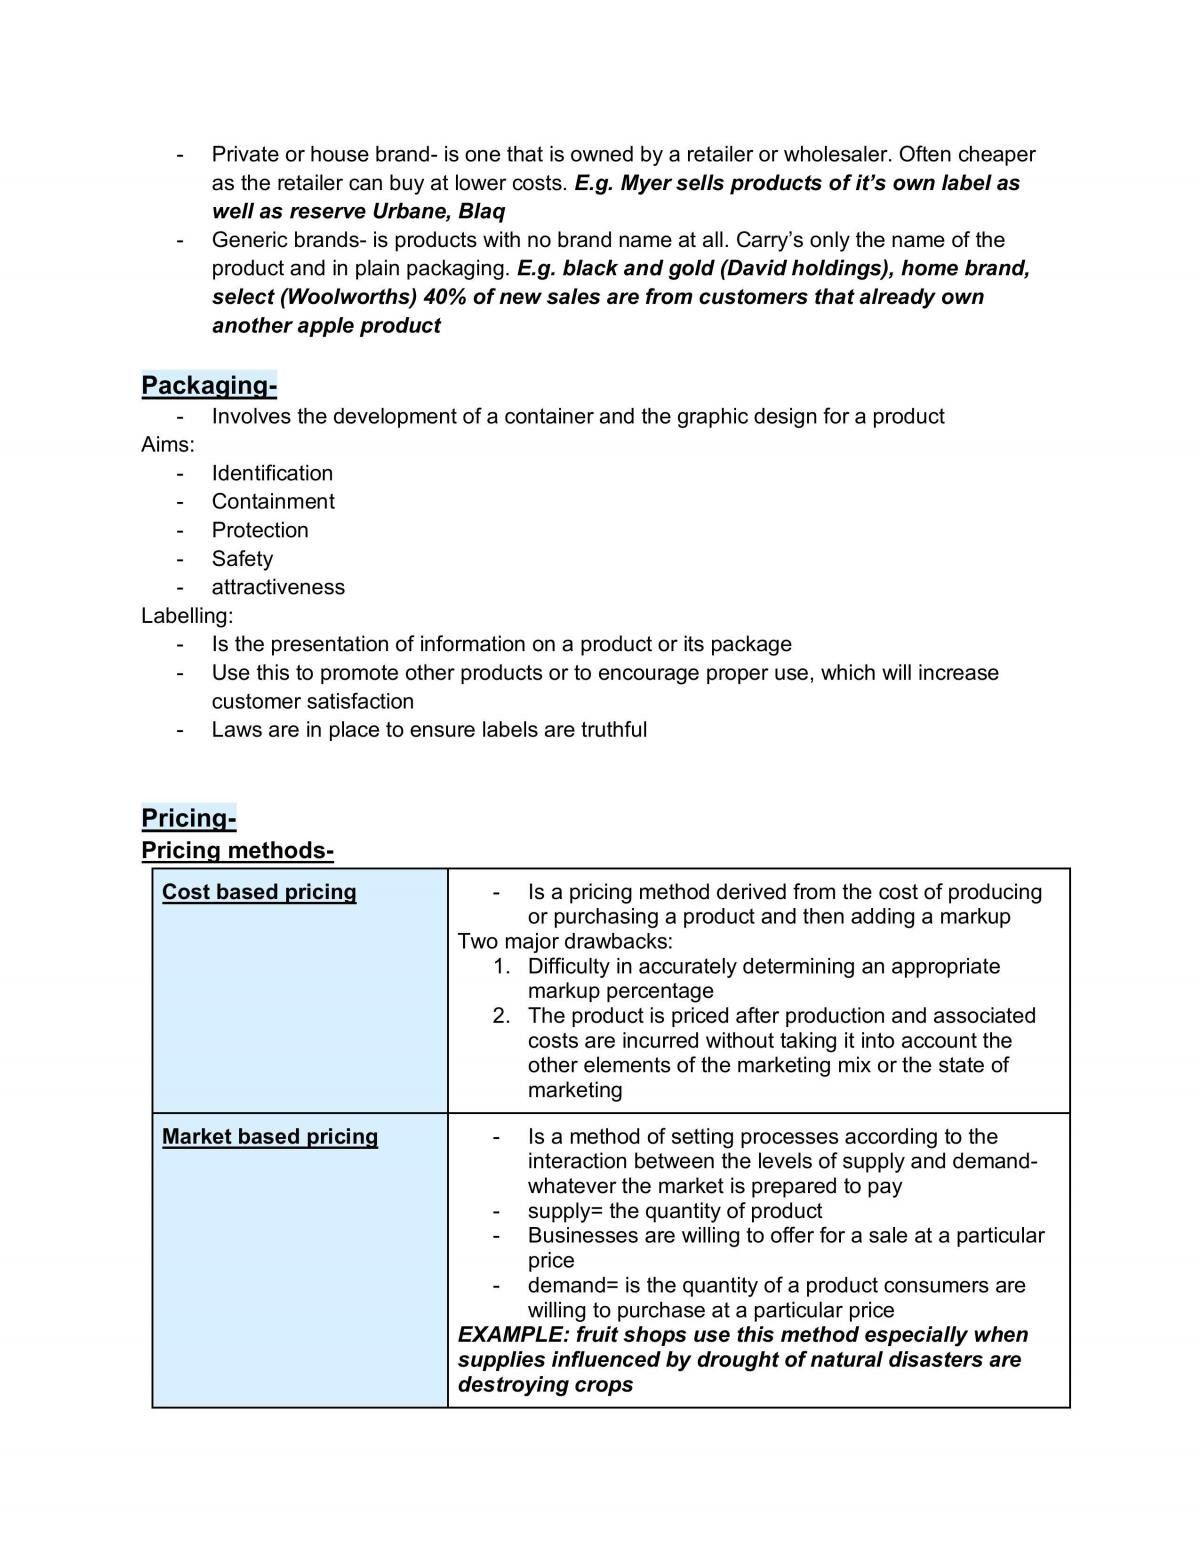 Complete Business Notes on Marketing  - Page 17